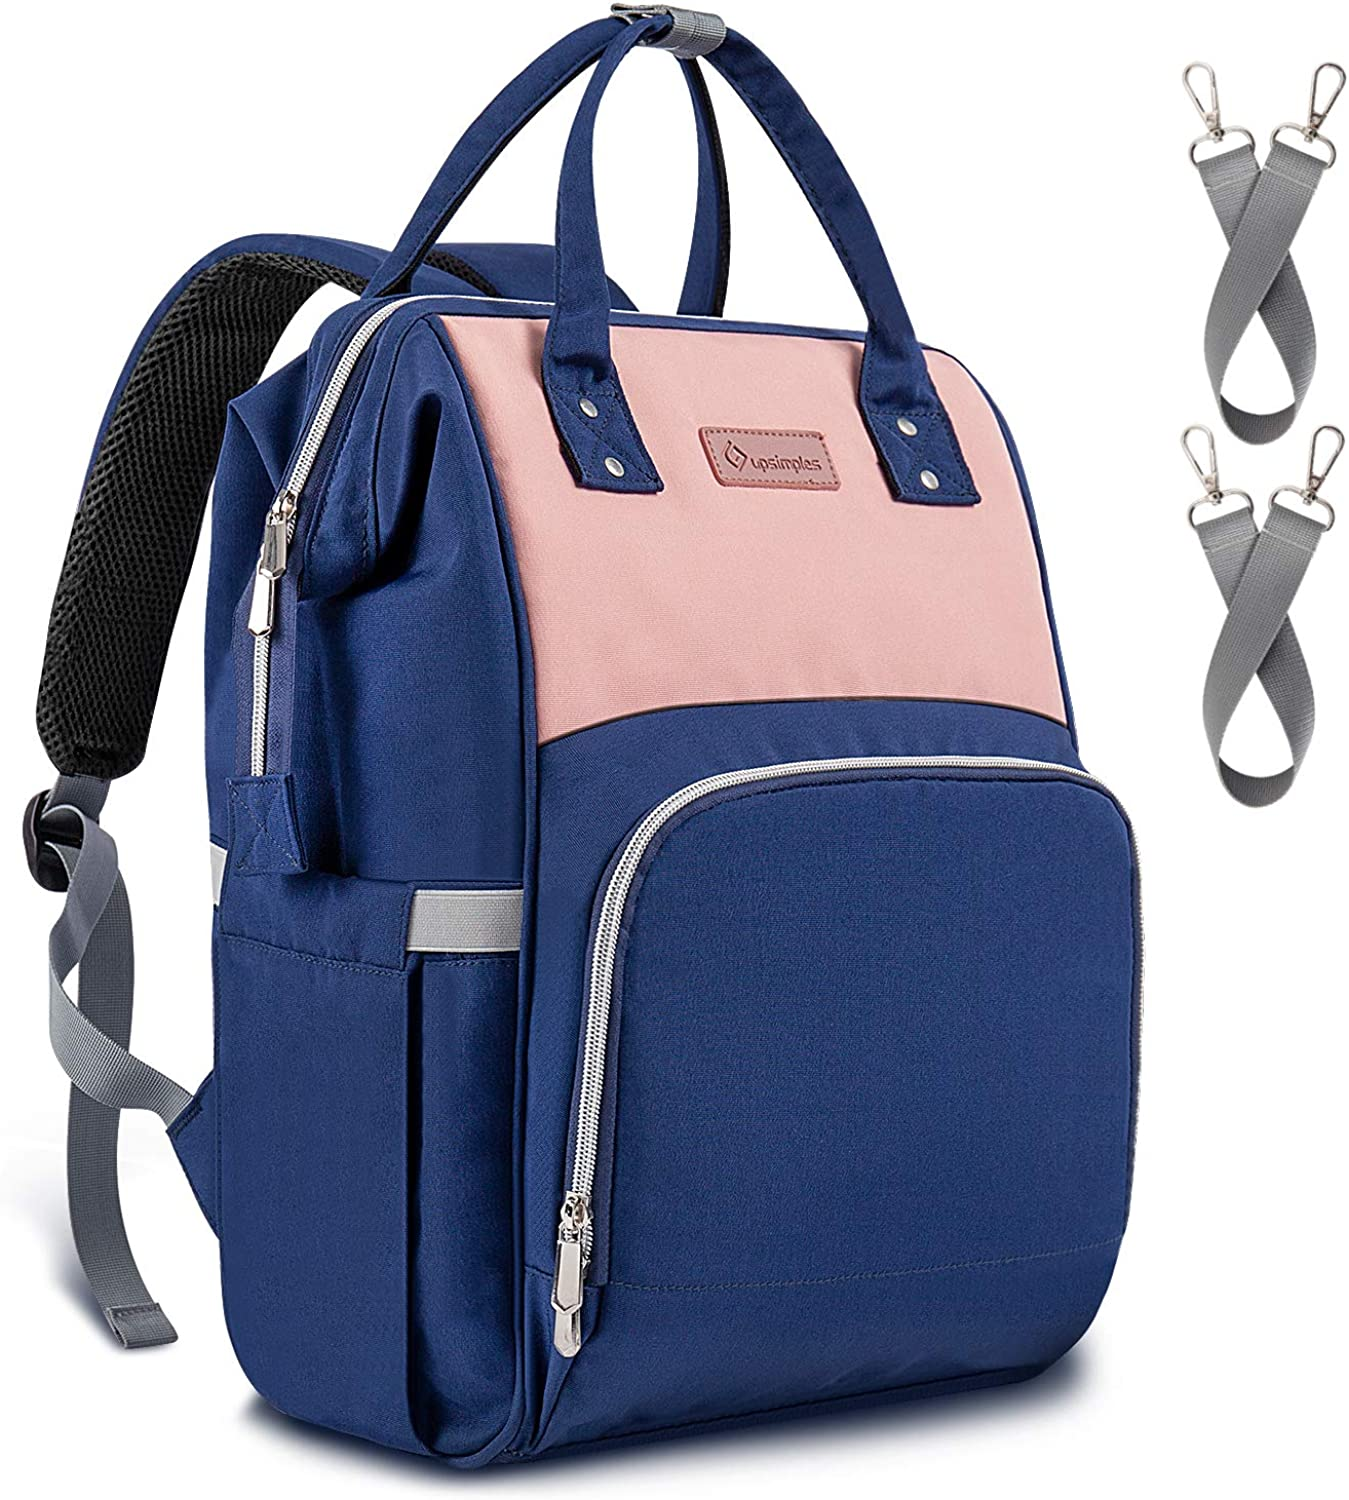 Diaper Bag Backpack Upsimples Baby Bags with USB Charging Port